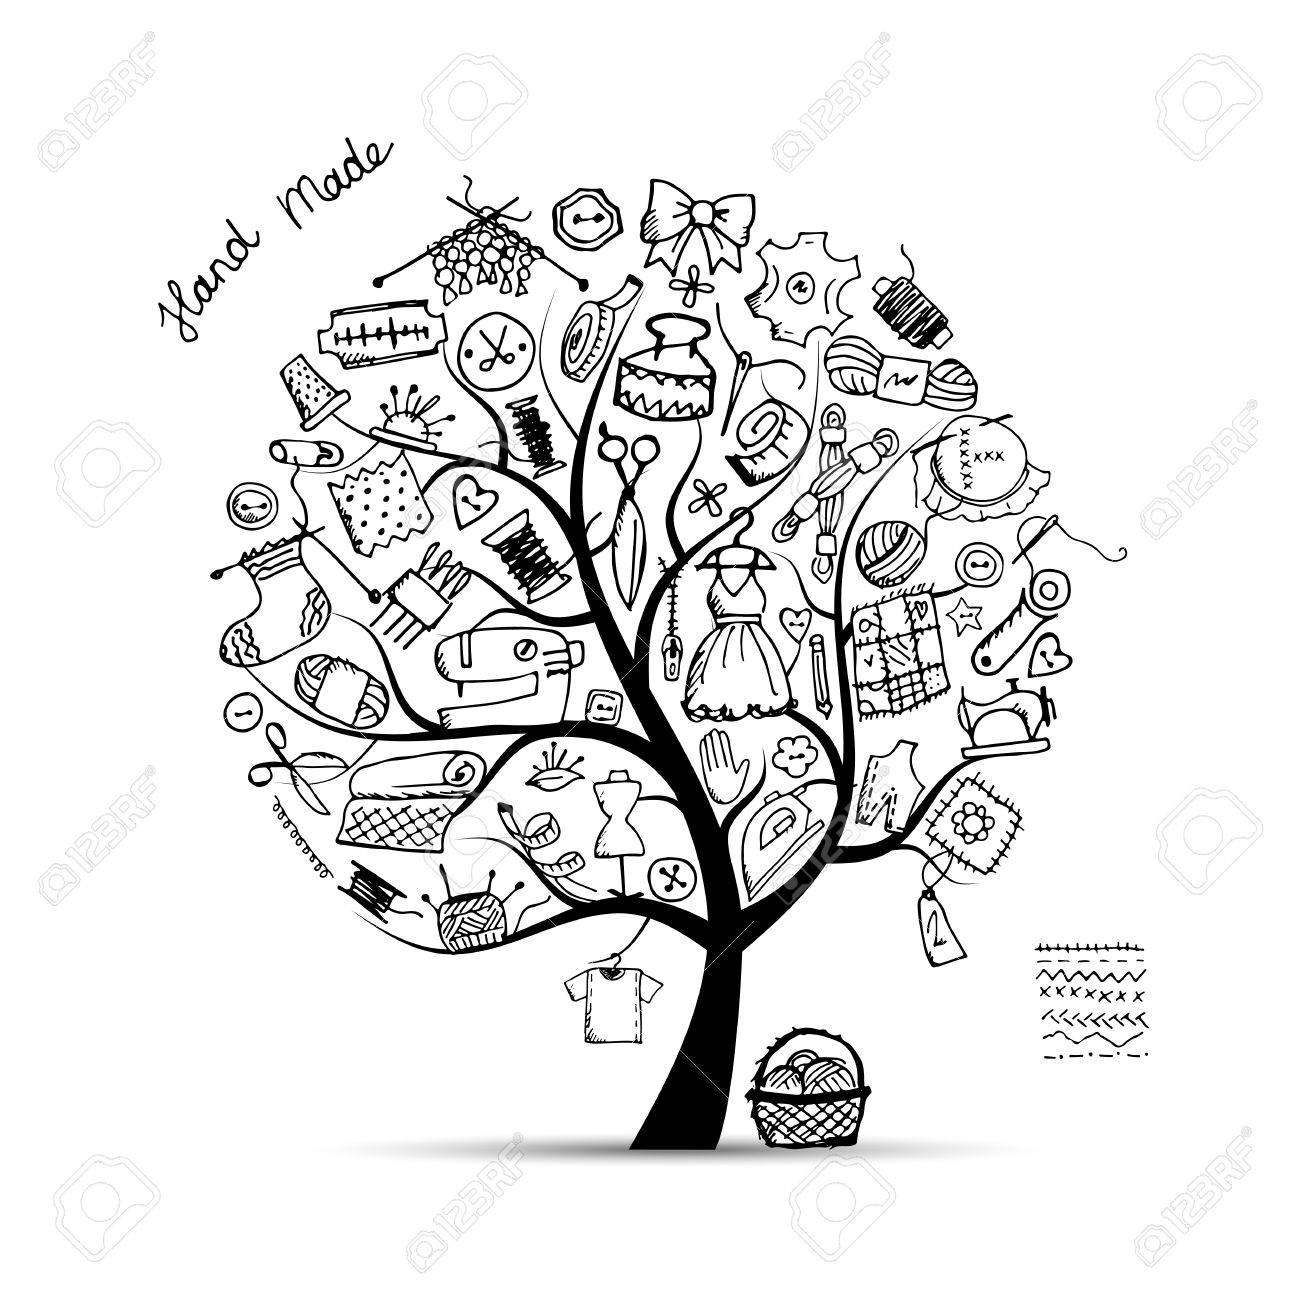 Sewing tree, sketch for your design. Vector illustration Stock Vector - 60762634